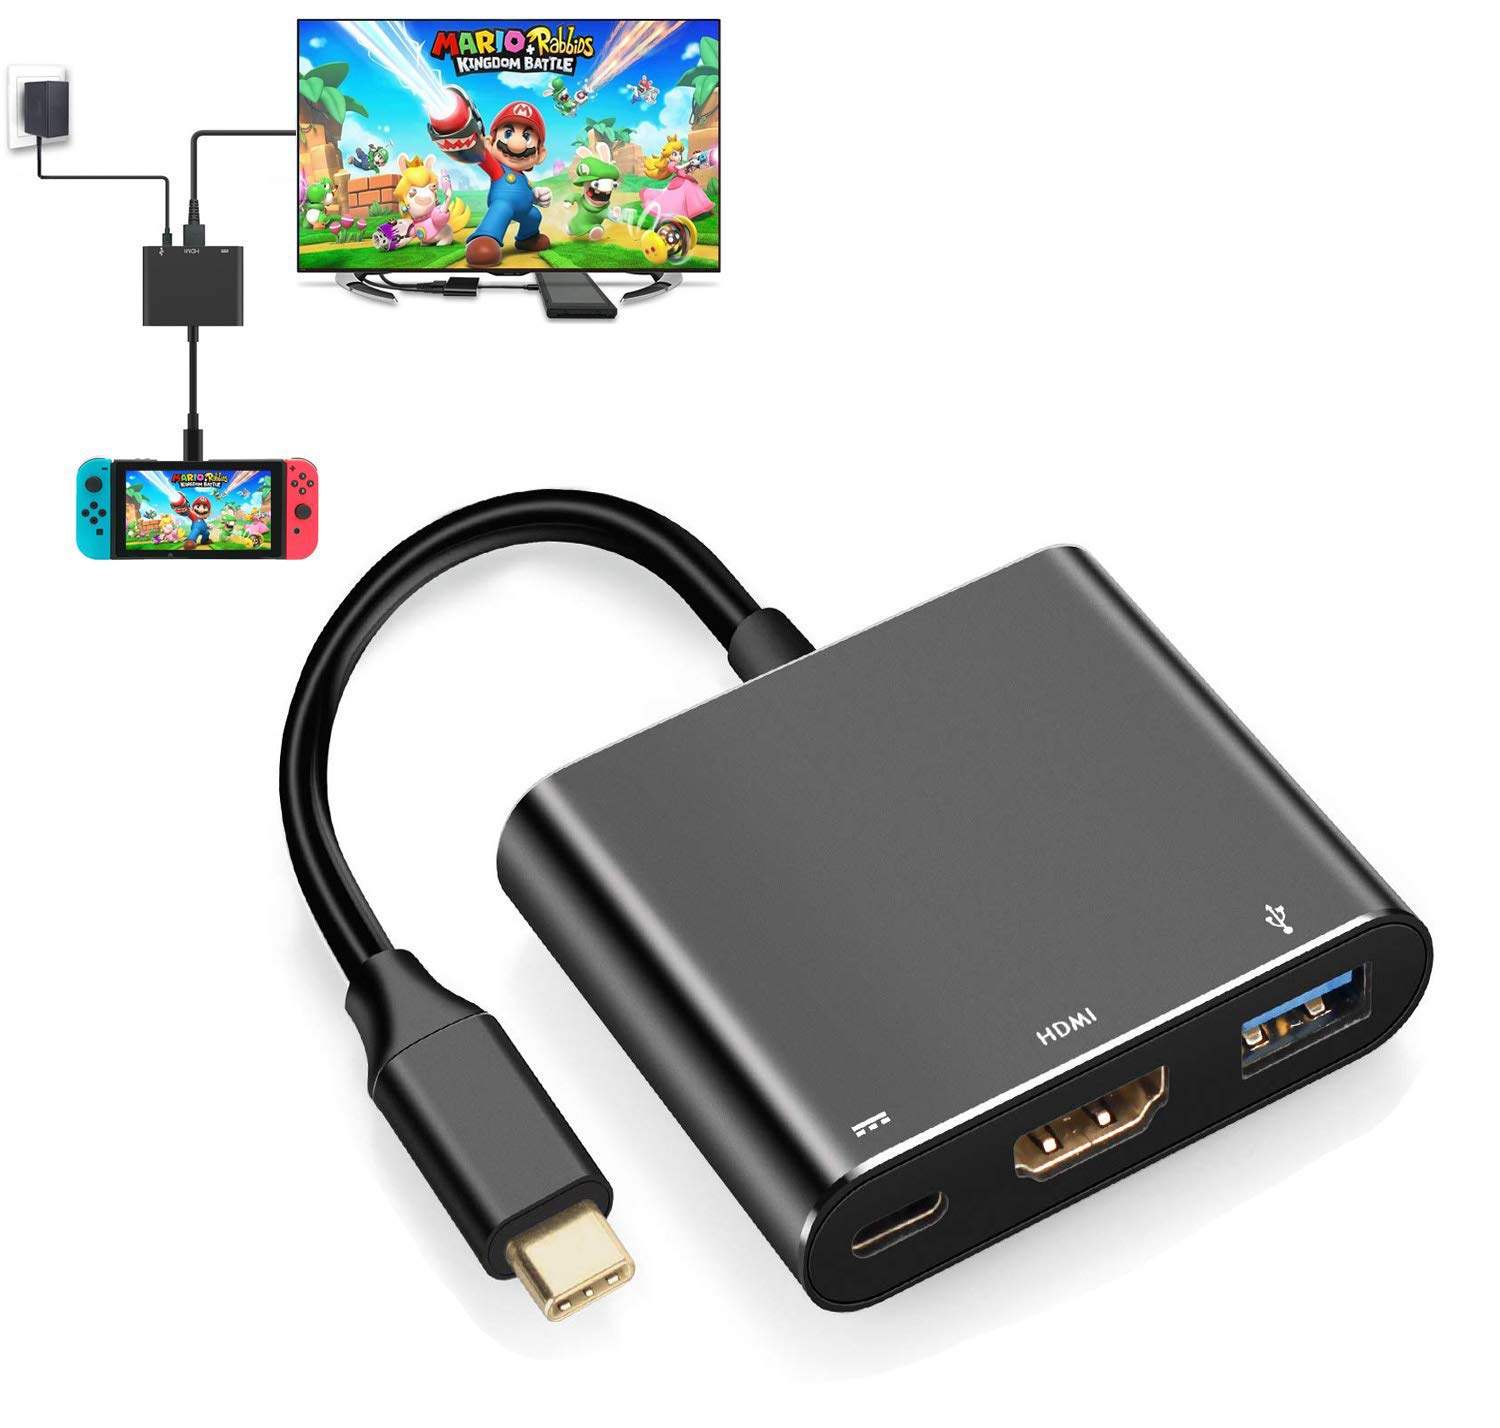 HDMI Adapter for Nintendo Switch, USB-C Charging Cable Switch Hdmi Adapter Support Any Type C Device Hub Adapter for…